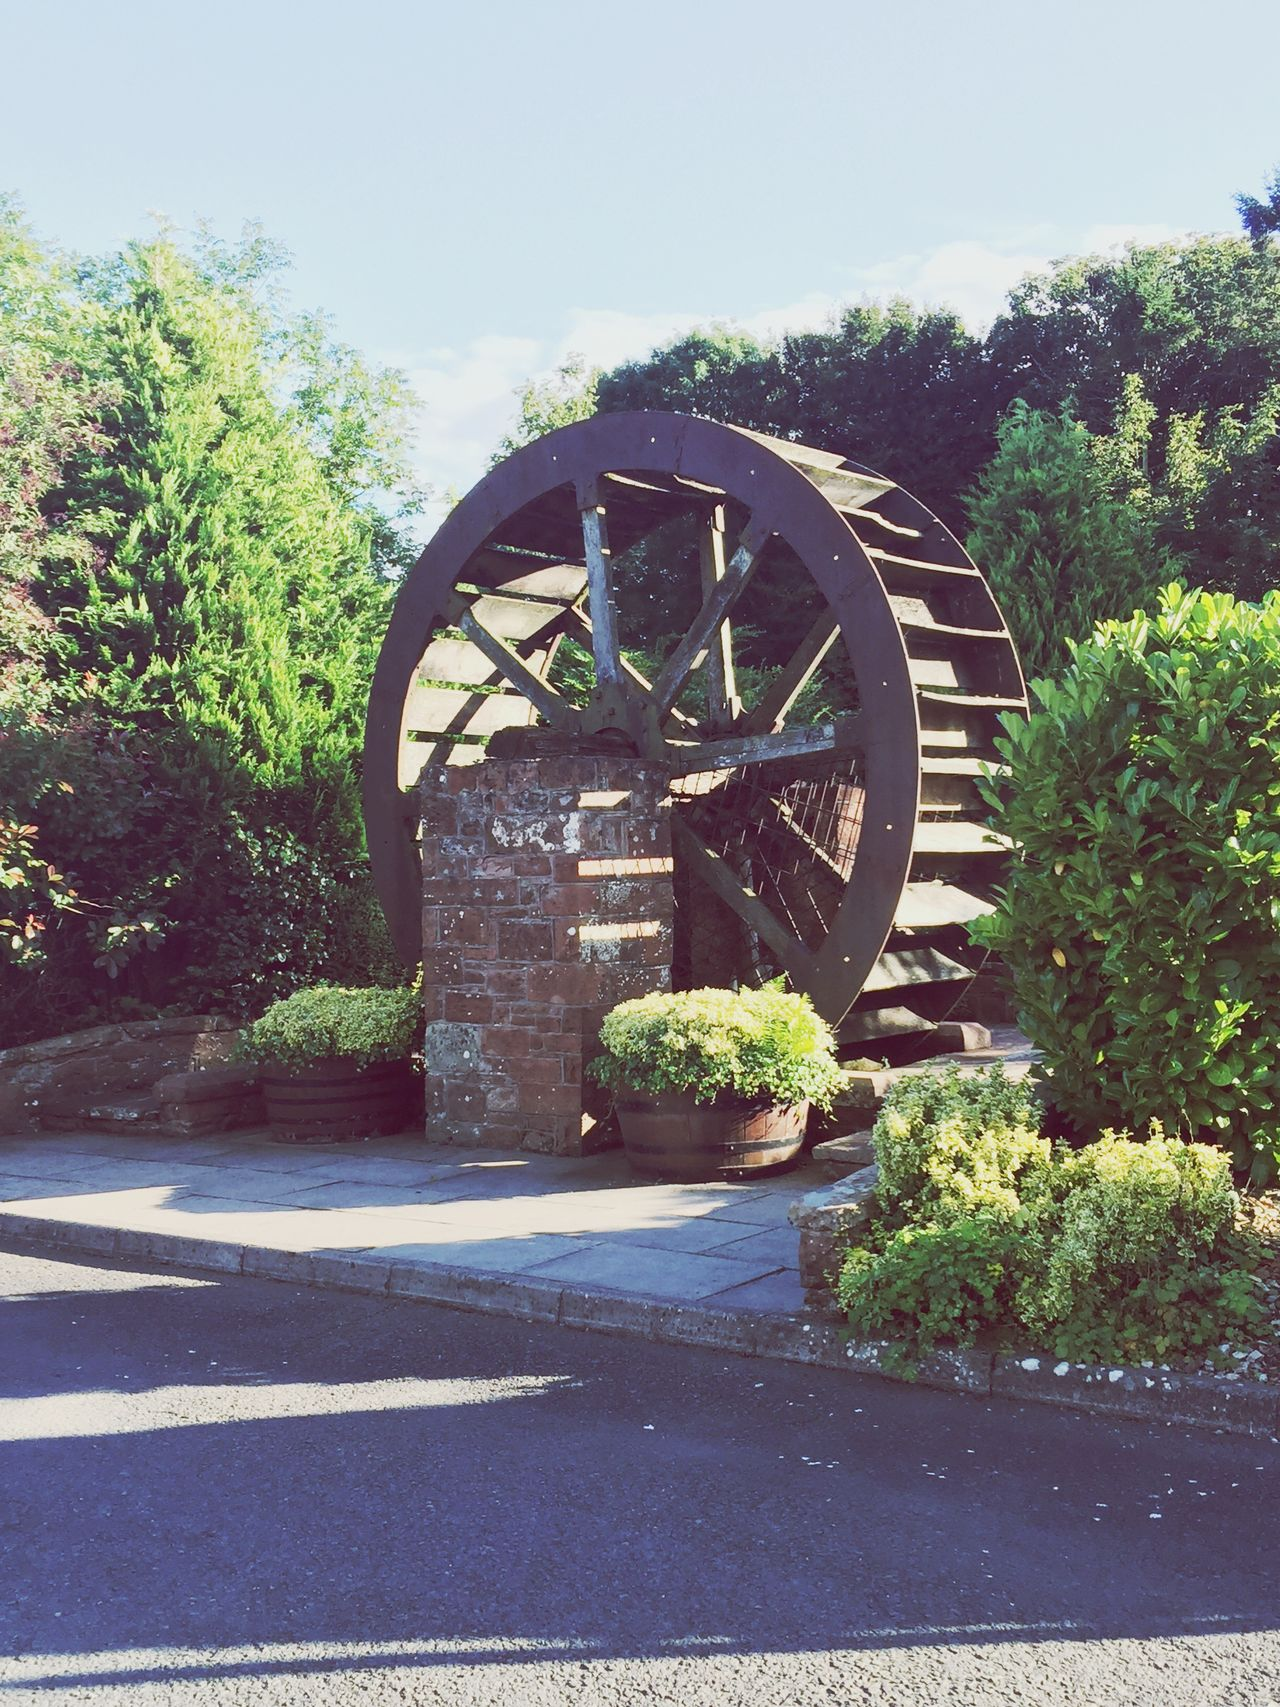 Architecture IPhoneography Taking Photos Nature_collection Iphonephotography Sunshine ☀ Eye Em Scotland Eyeem Scotland  Mill Forge Wheel Man Made Object